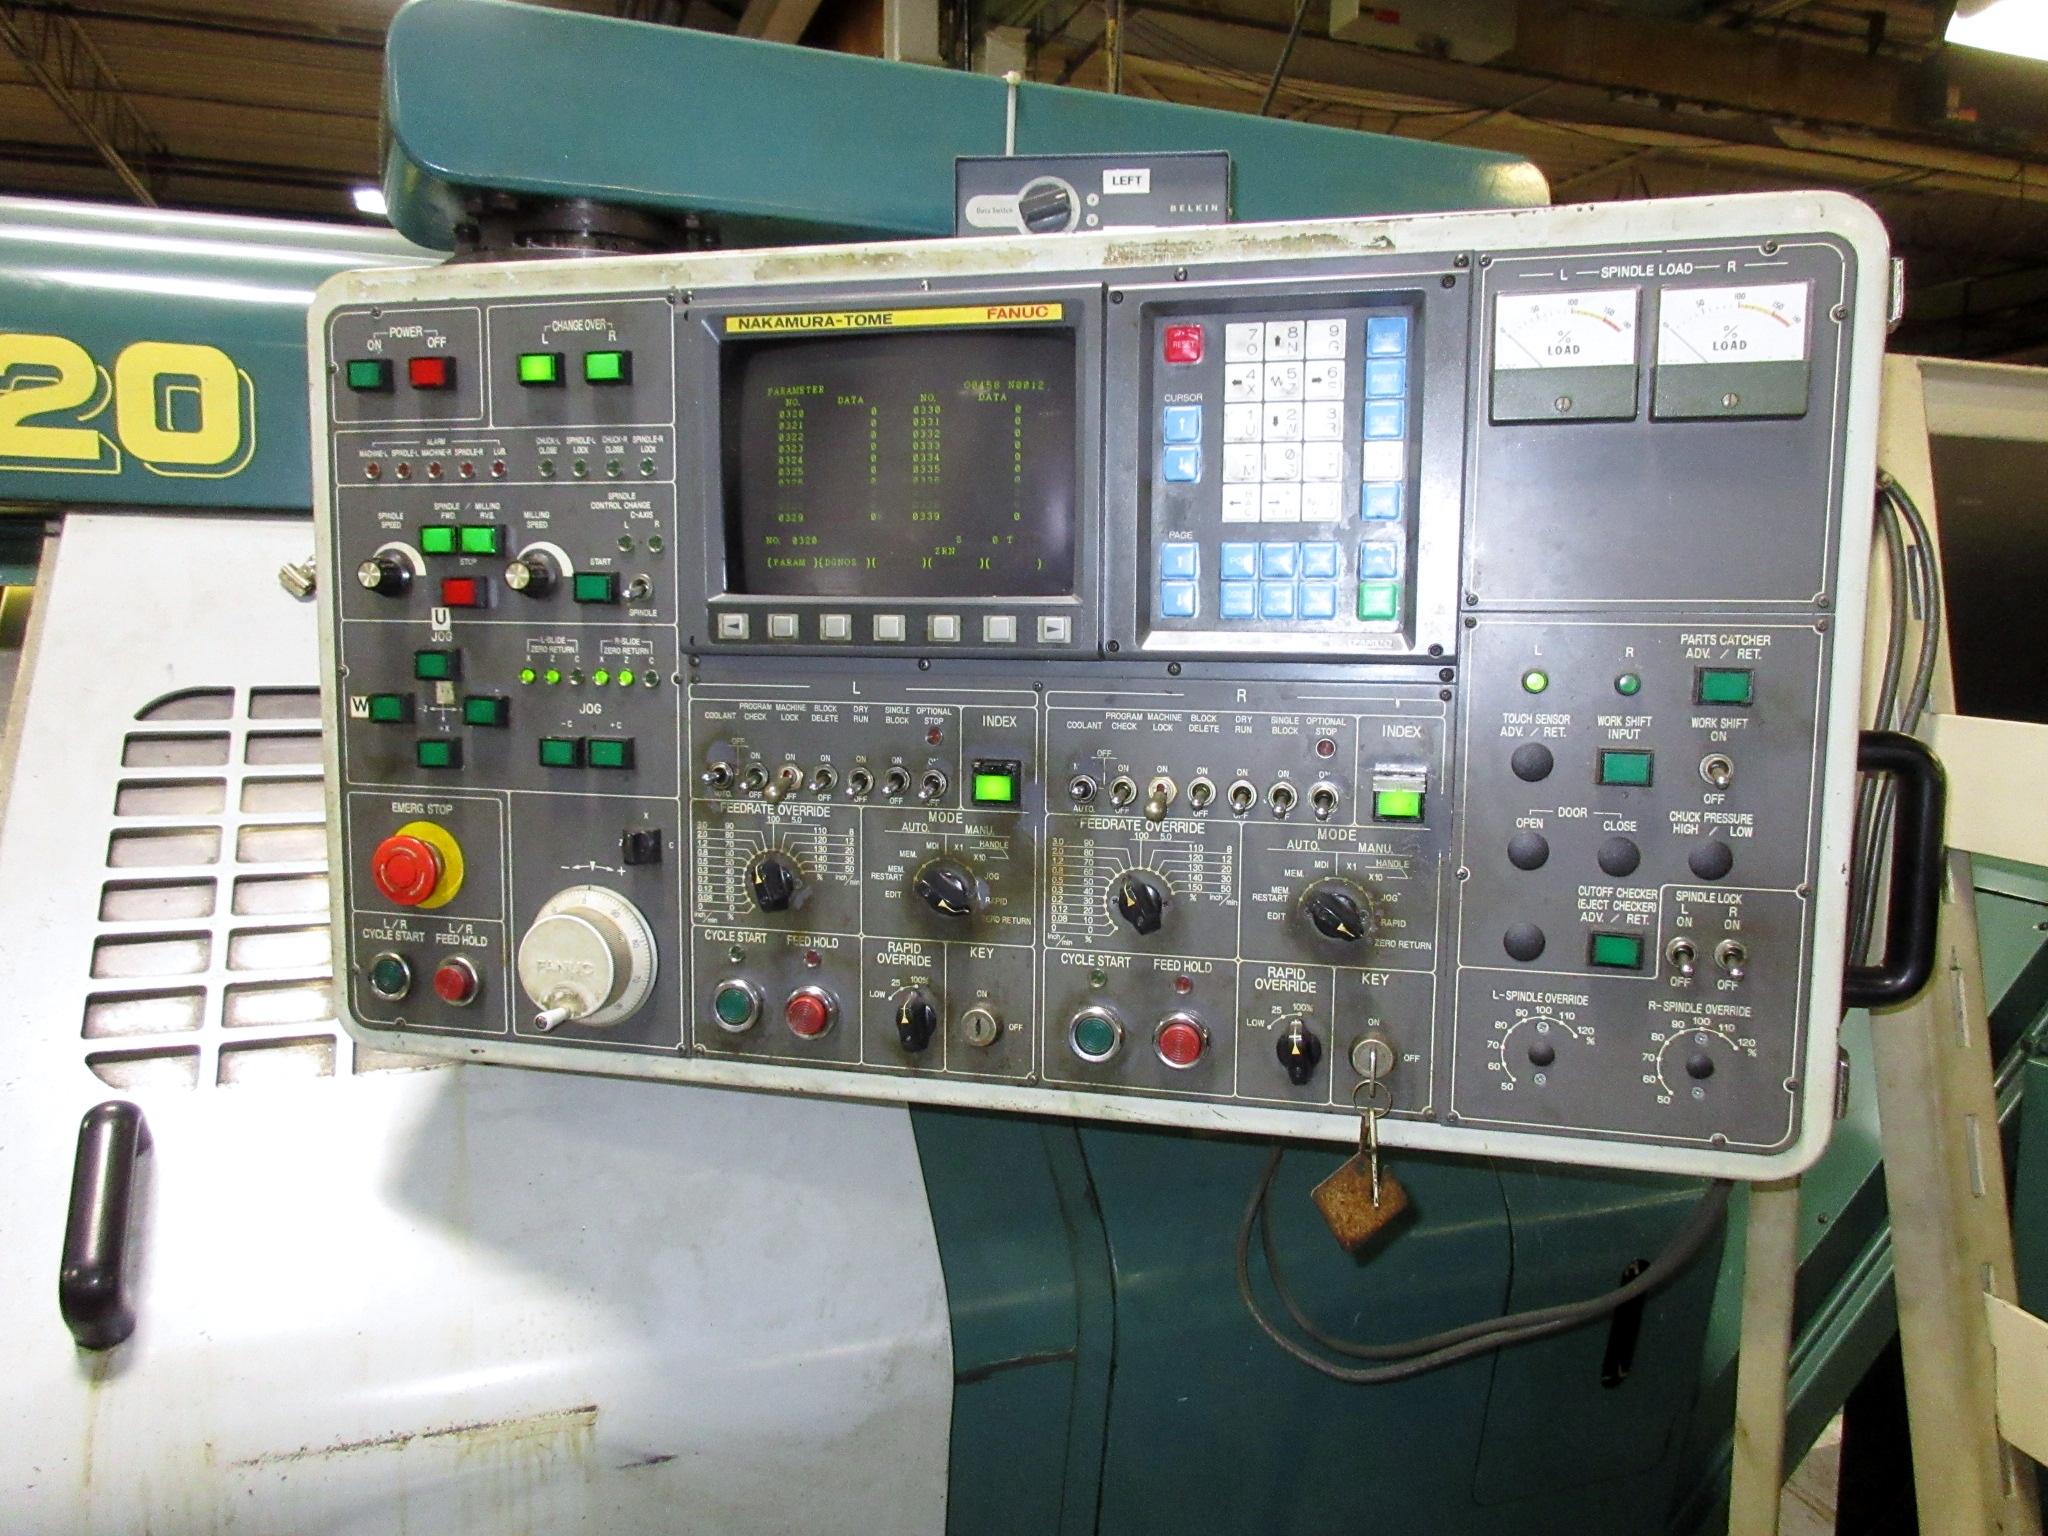 NAKAMURA TOME TW-20 6-AXIS CNC TWIN SPINDLE TURNING CENTER - Image 4 of 17